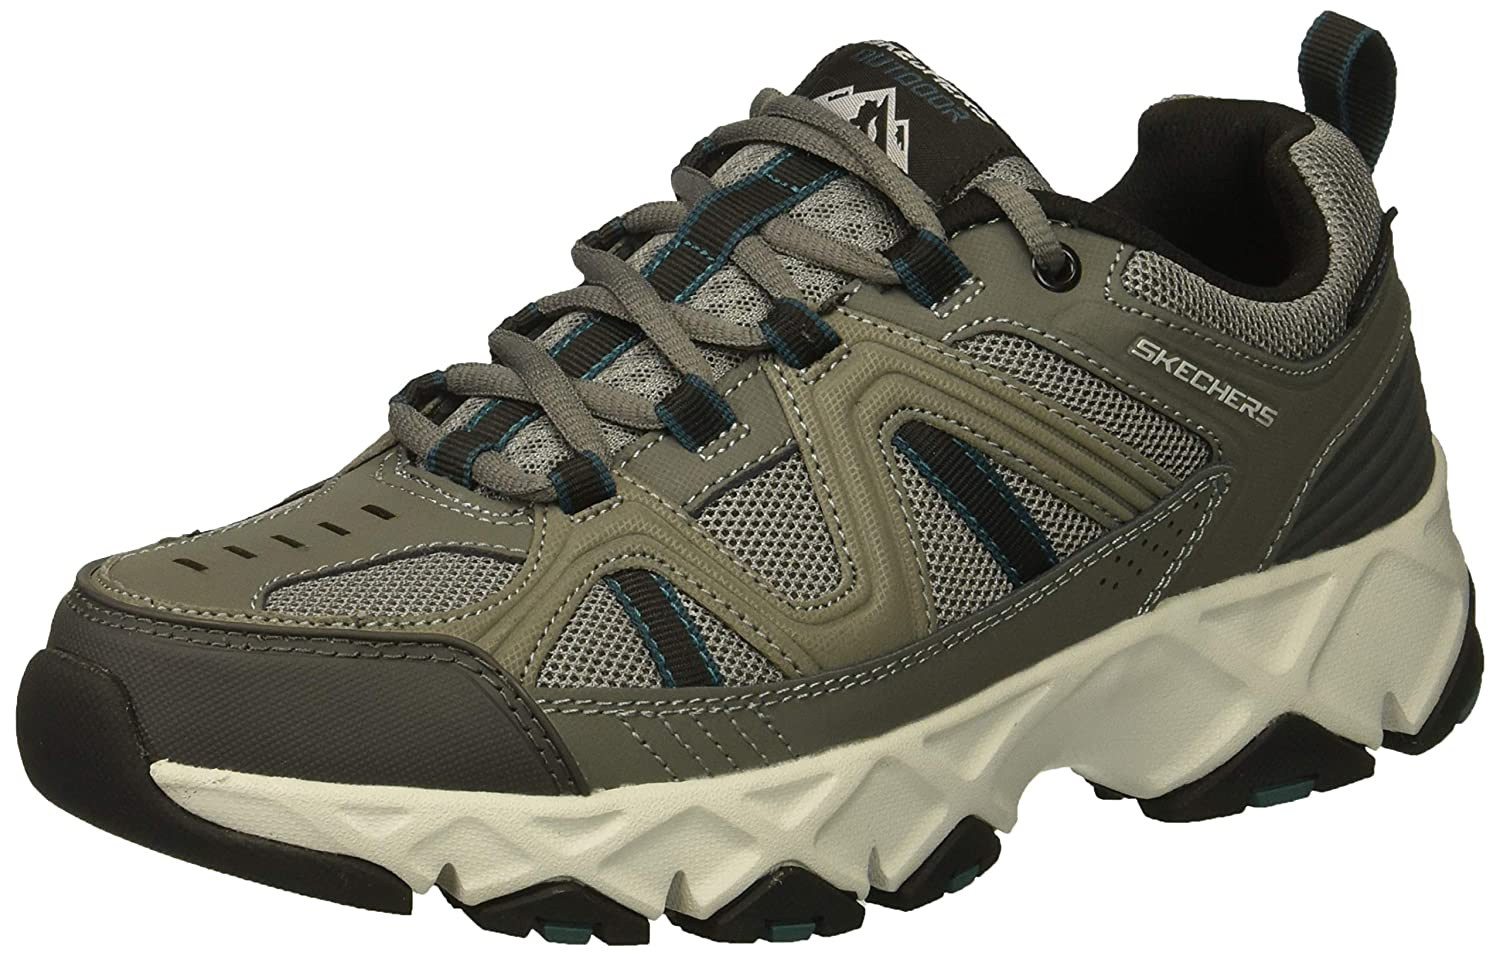 Skechers Men's Crossbar Oxford, Gray/Black, 11 4E US